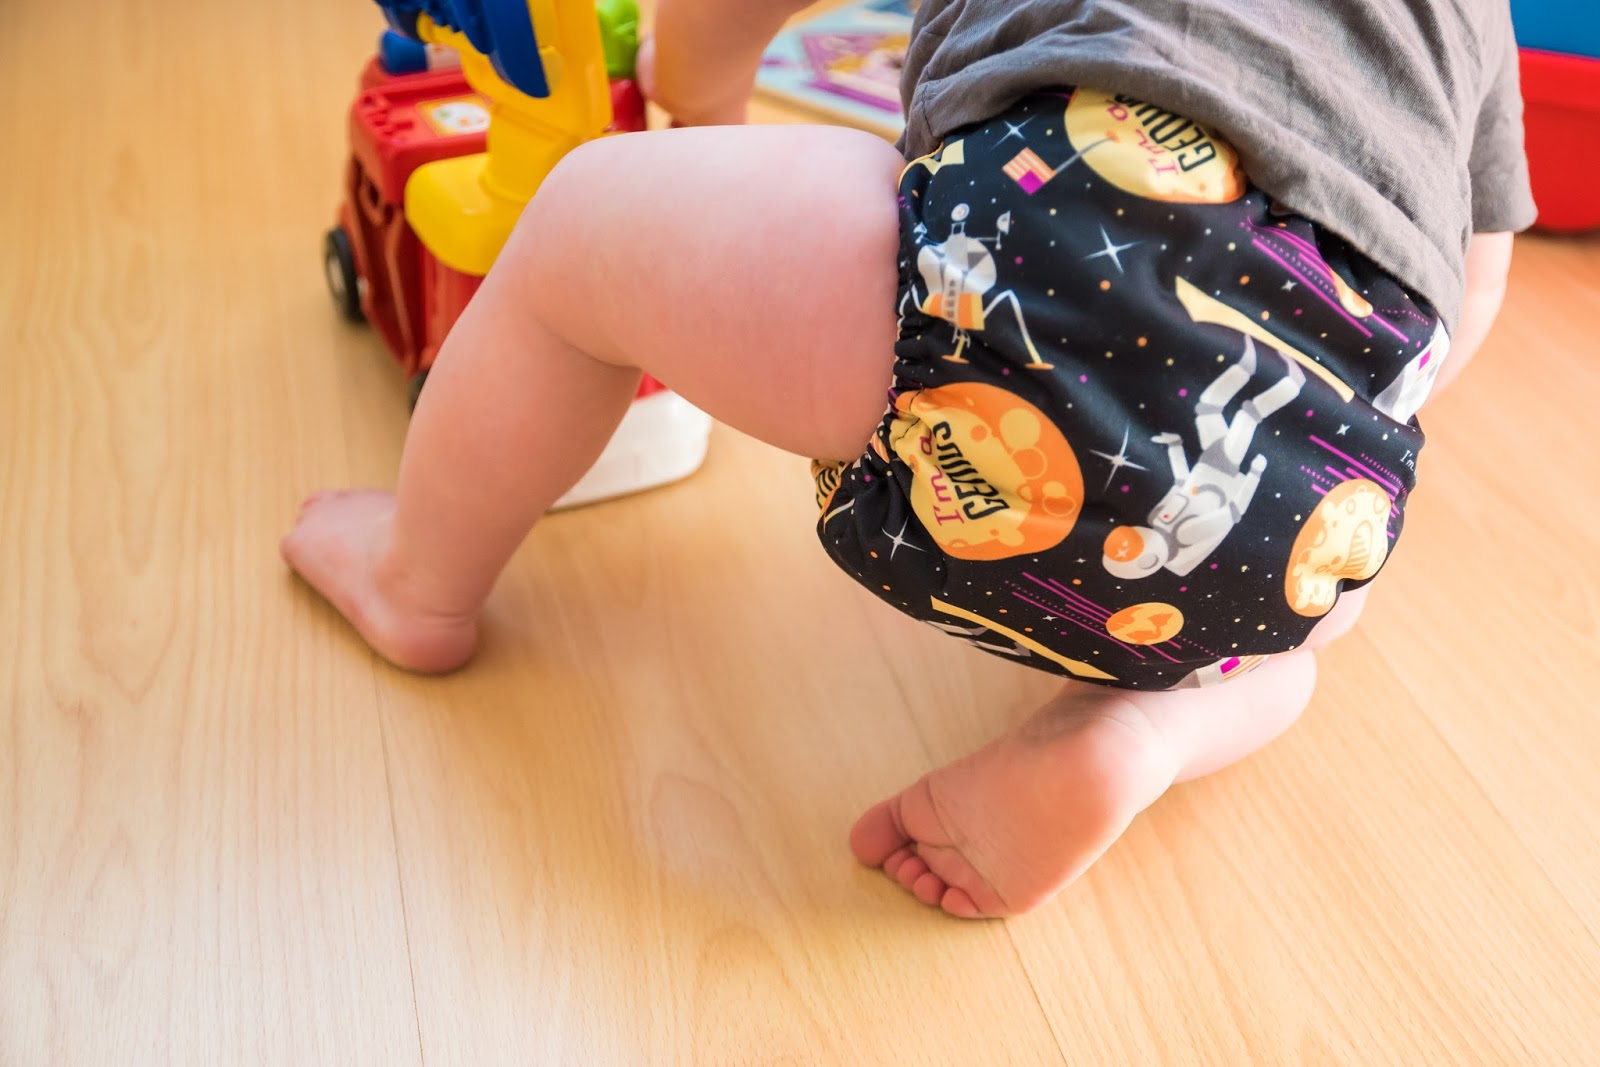 toddler playing in playroom wearing bumgenius cloth nappy